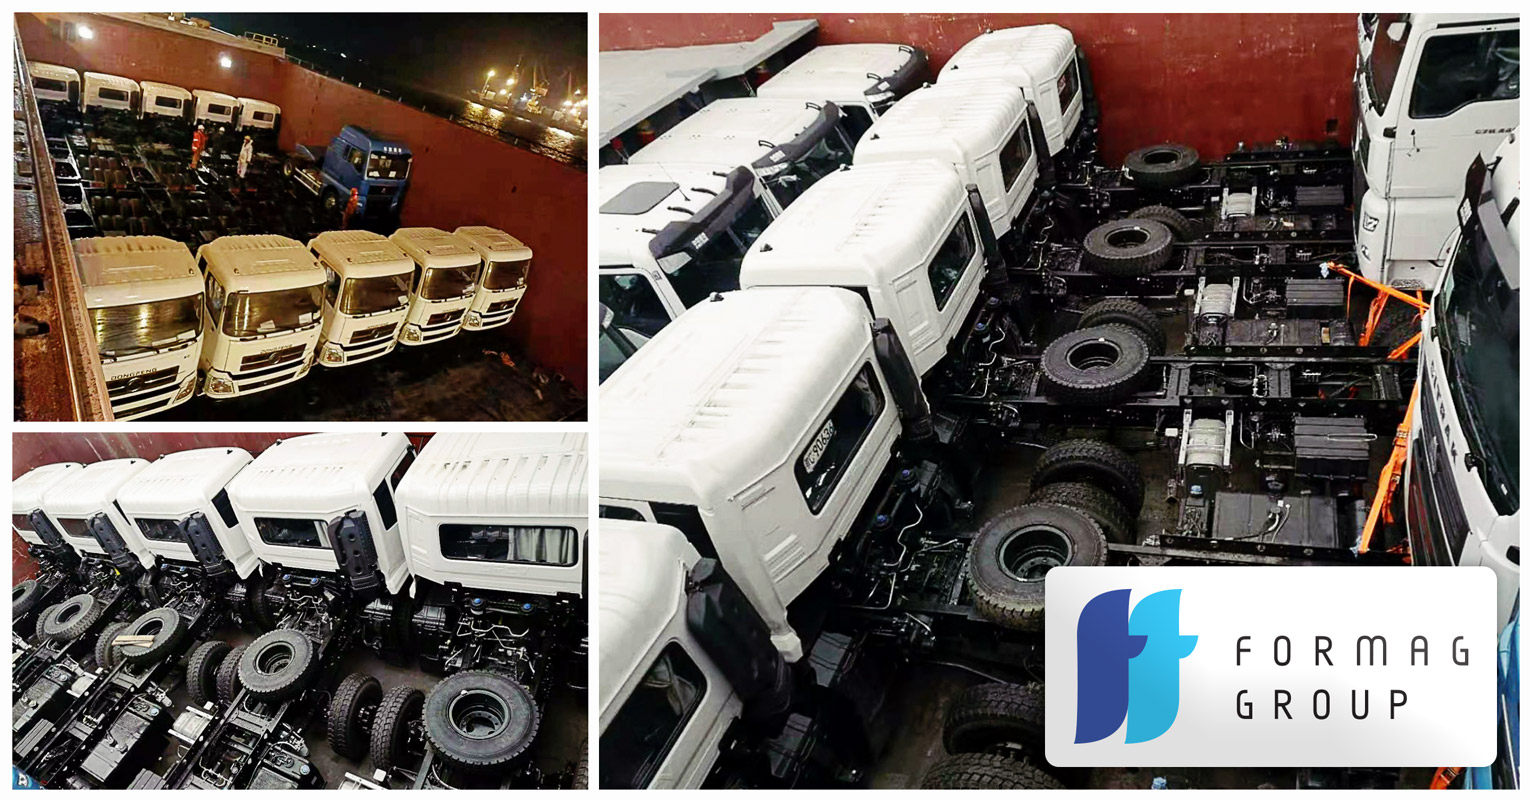 Formag Group Arranged Several Shipments of Truck Chassis using Breakbulk Ships